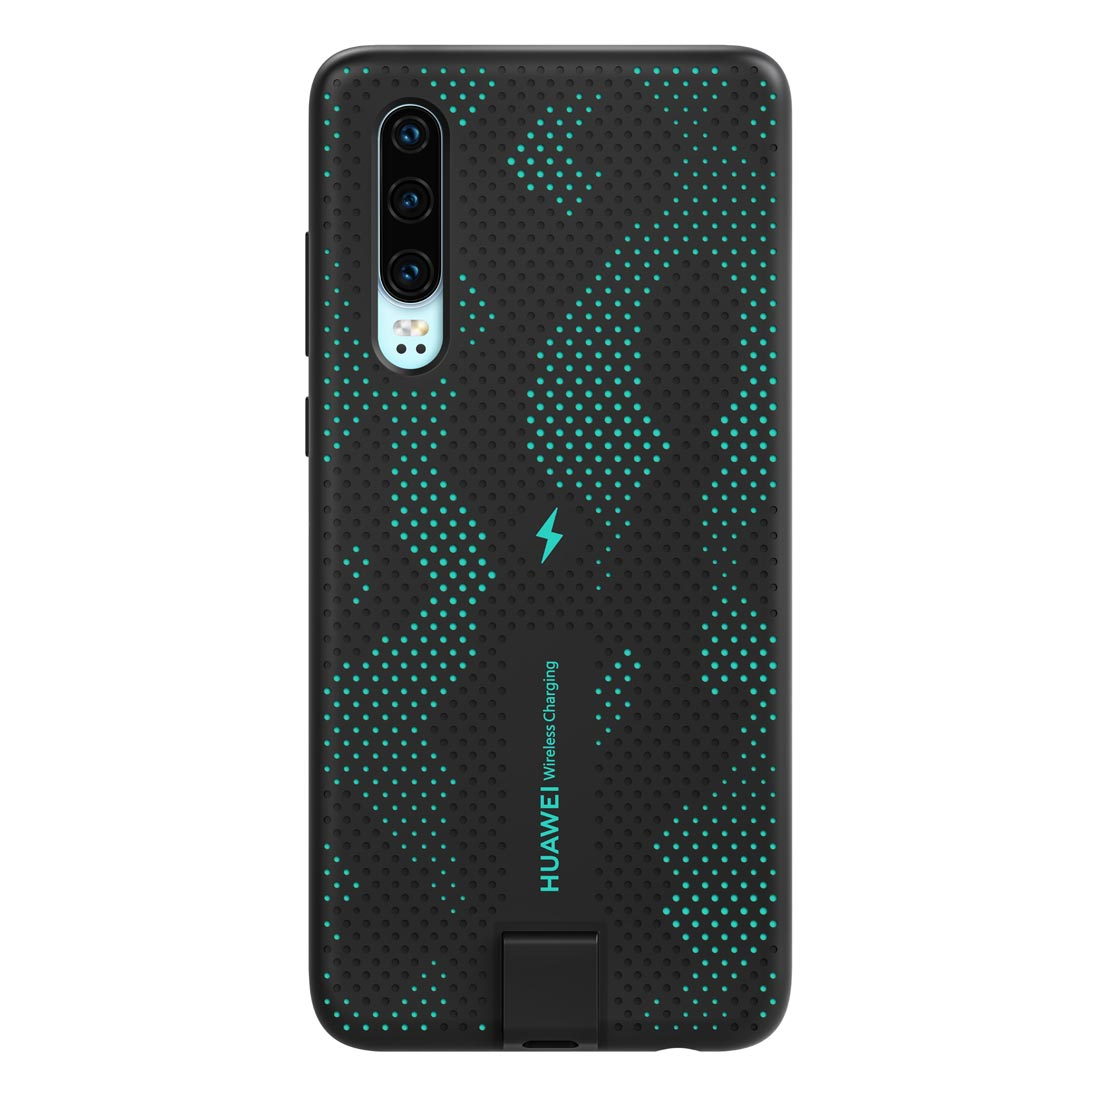 Huawei P30 Wireless Charging Case - Sparkle Blue